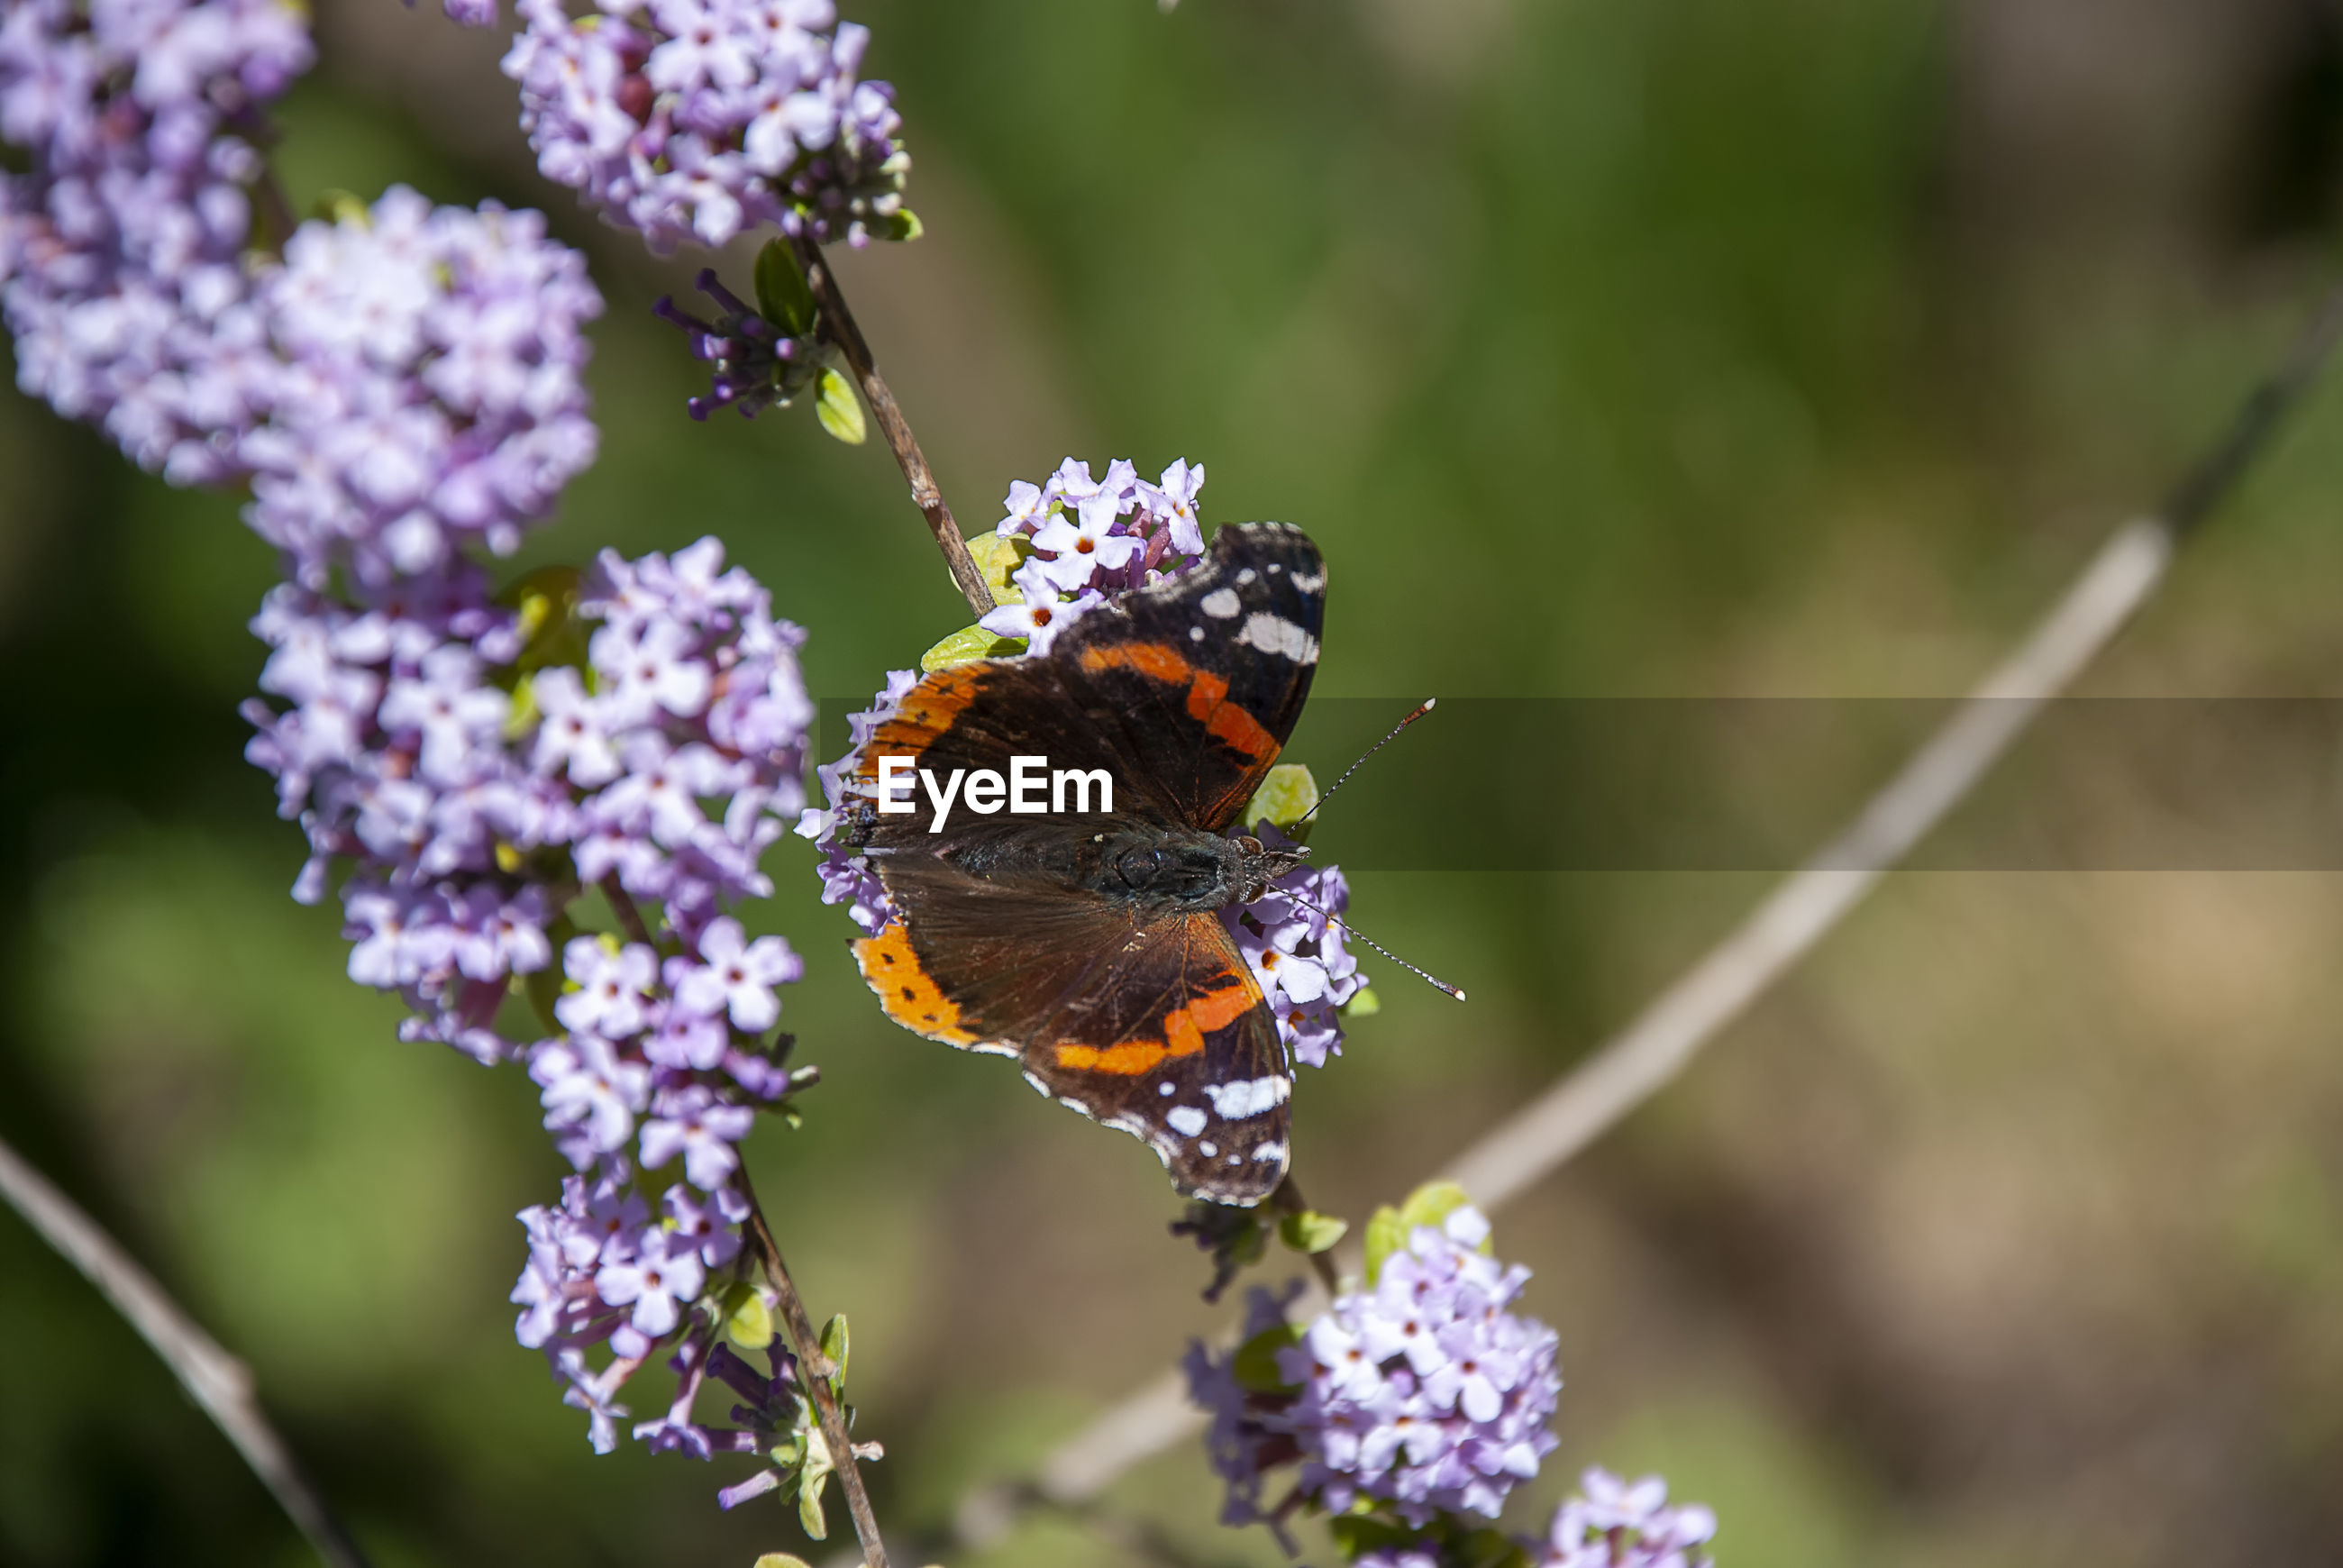 CLOSE-UP OF BUTTERFLY POLLINATING ON PURPLE FLOWERING